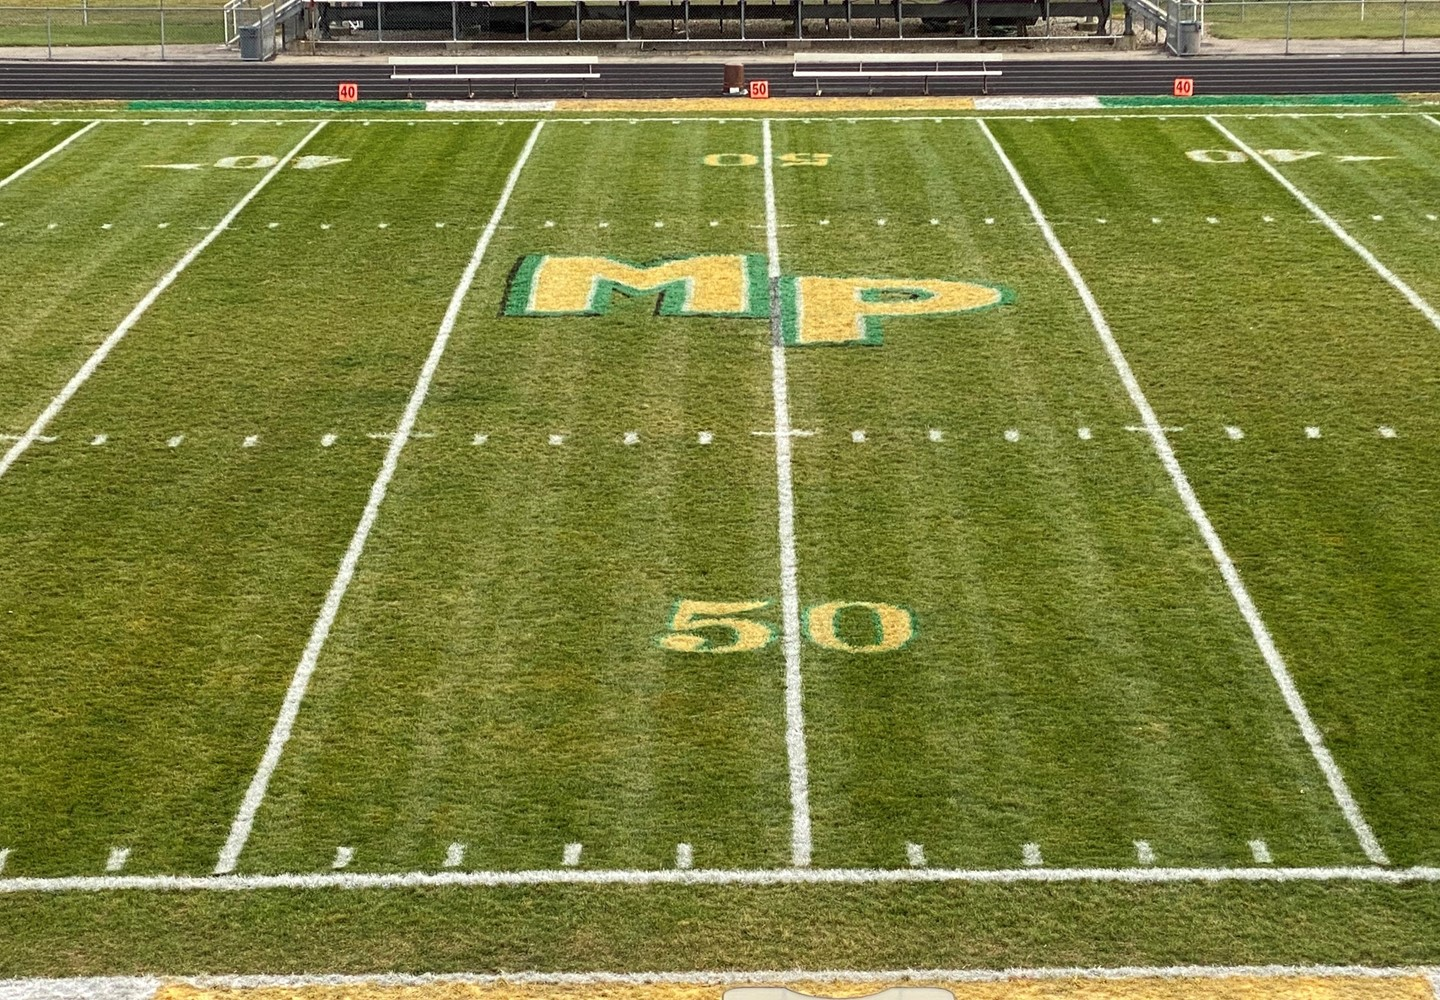 Football field showing the MP and the 50 yard line